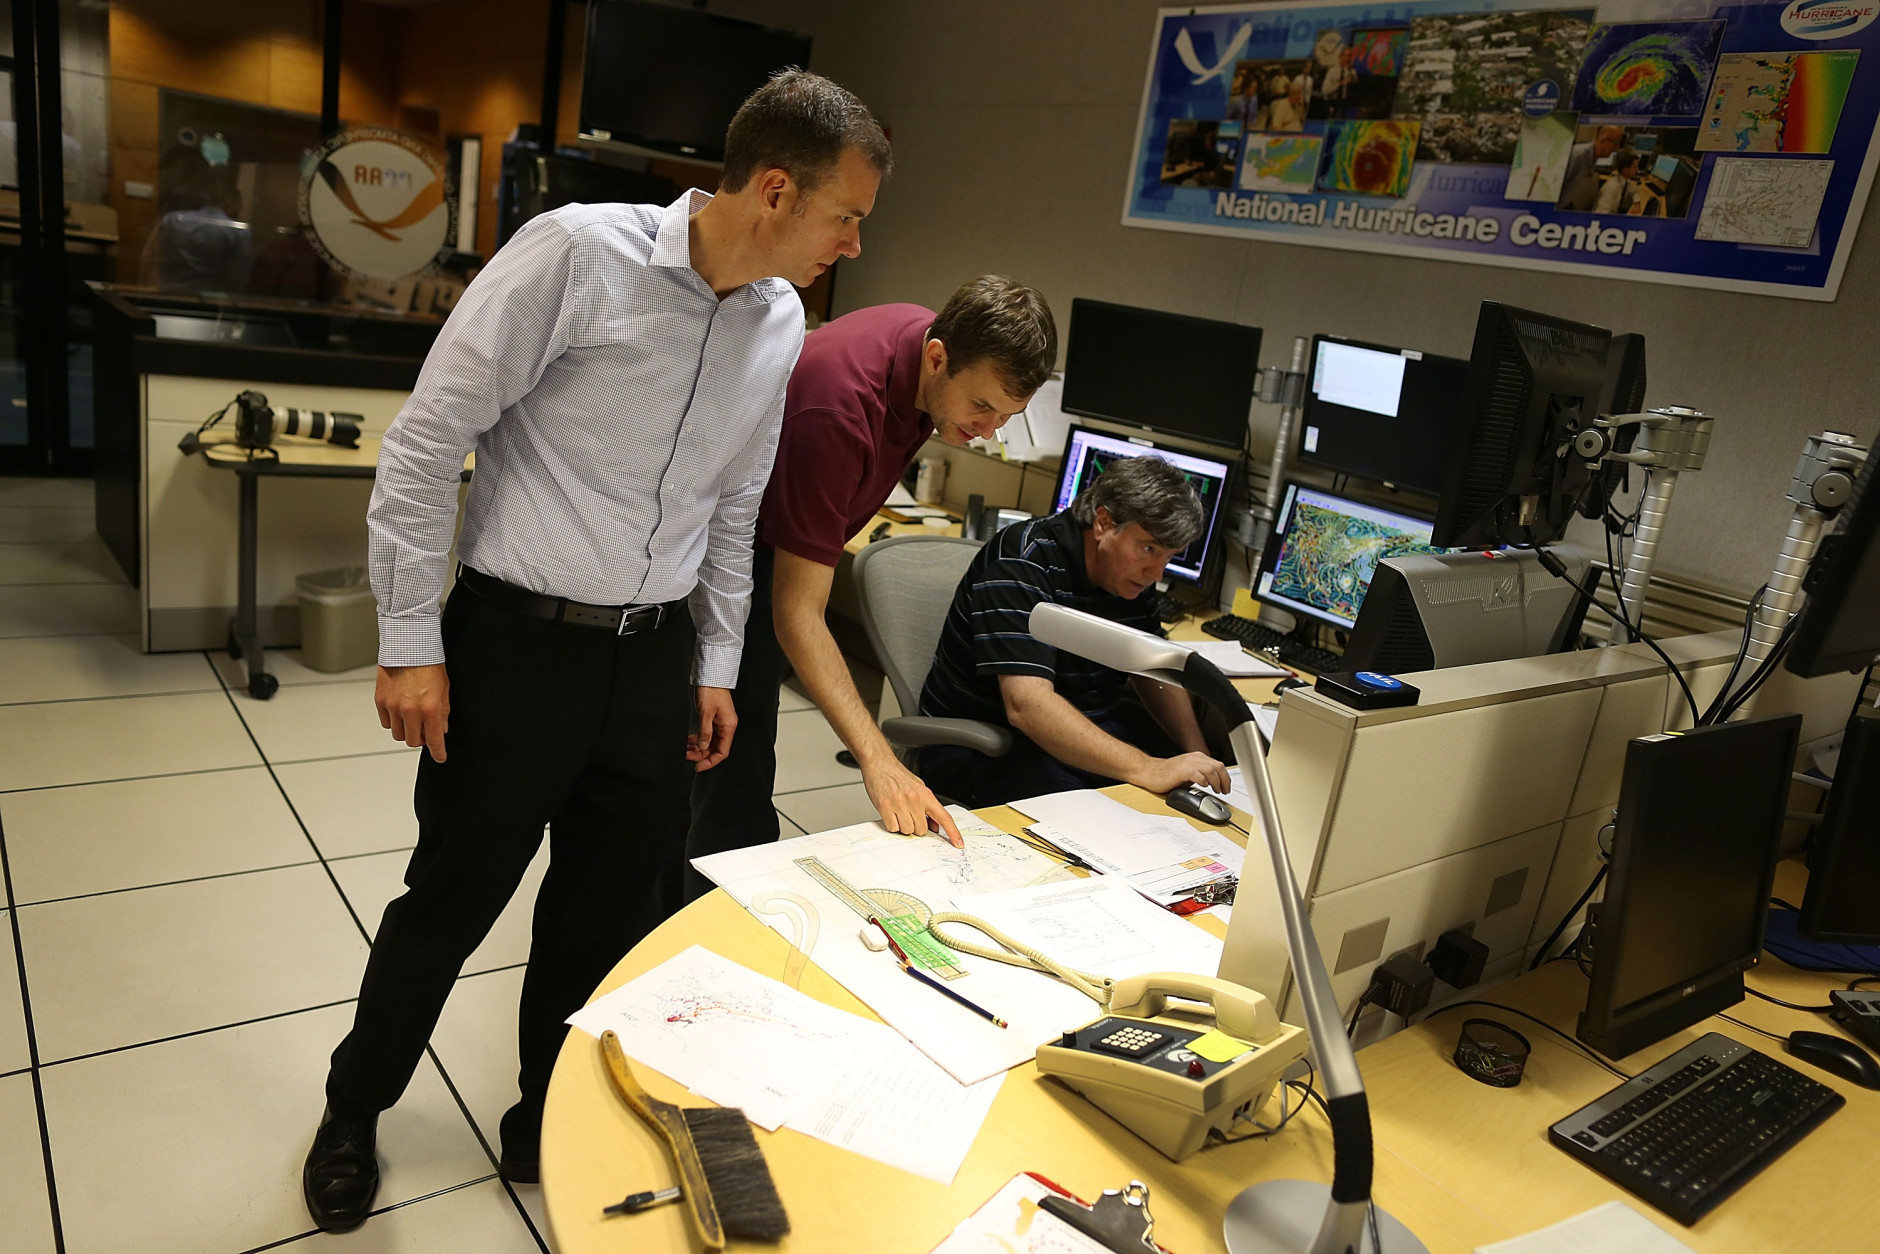 MIAMI, FL - OCTOBER 01:  Jamie Rhome, Storm Surge Specialist, Eric Blake, Hurricane Specialist, and Jack Beven, Senior Hurricane Specialist, (L-R) work in the National Hurricane Center as they track the path of Hurricane Joaquin, a Category 3 storm with maximum sustained winds of 125 mph, as it passes over parts of the Bahamas on October 1, 2015 in Miami, Florida. The forecasters are still trying to determine if the hurricane will turn to the north and northwest, which might affect the U.S. East Coast.  (Photo by Joe Raedle/Getty Images)